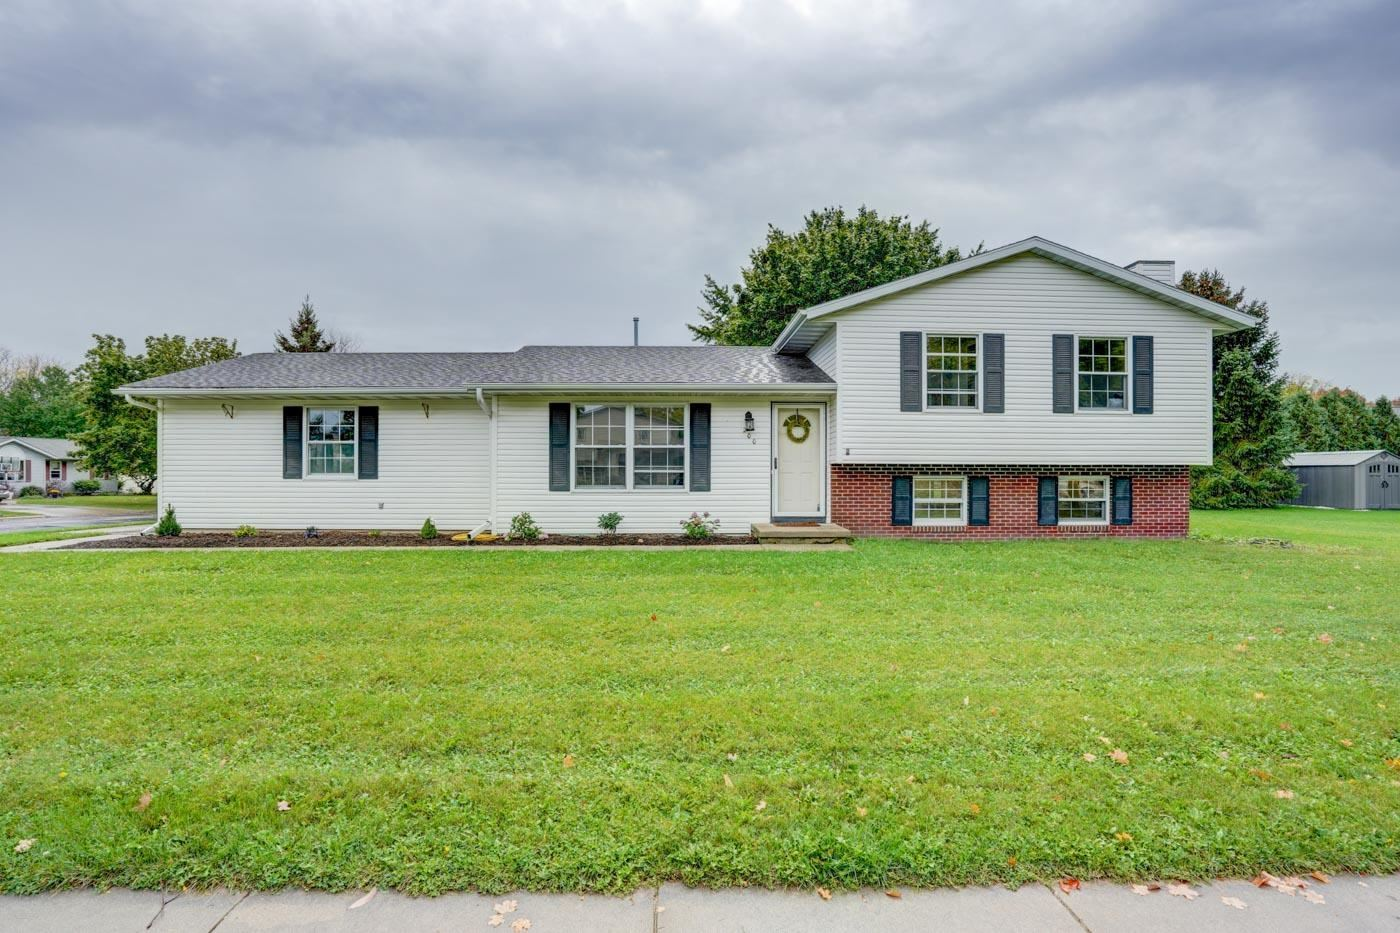 Photo for 200 W Parkview St, Cottage Grove, WI 53527 (MLS # 1916580)